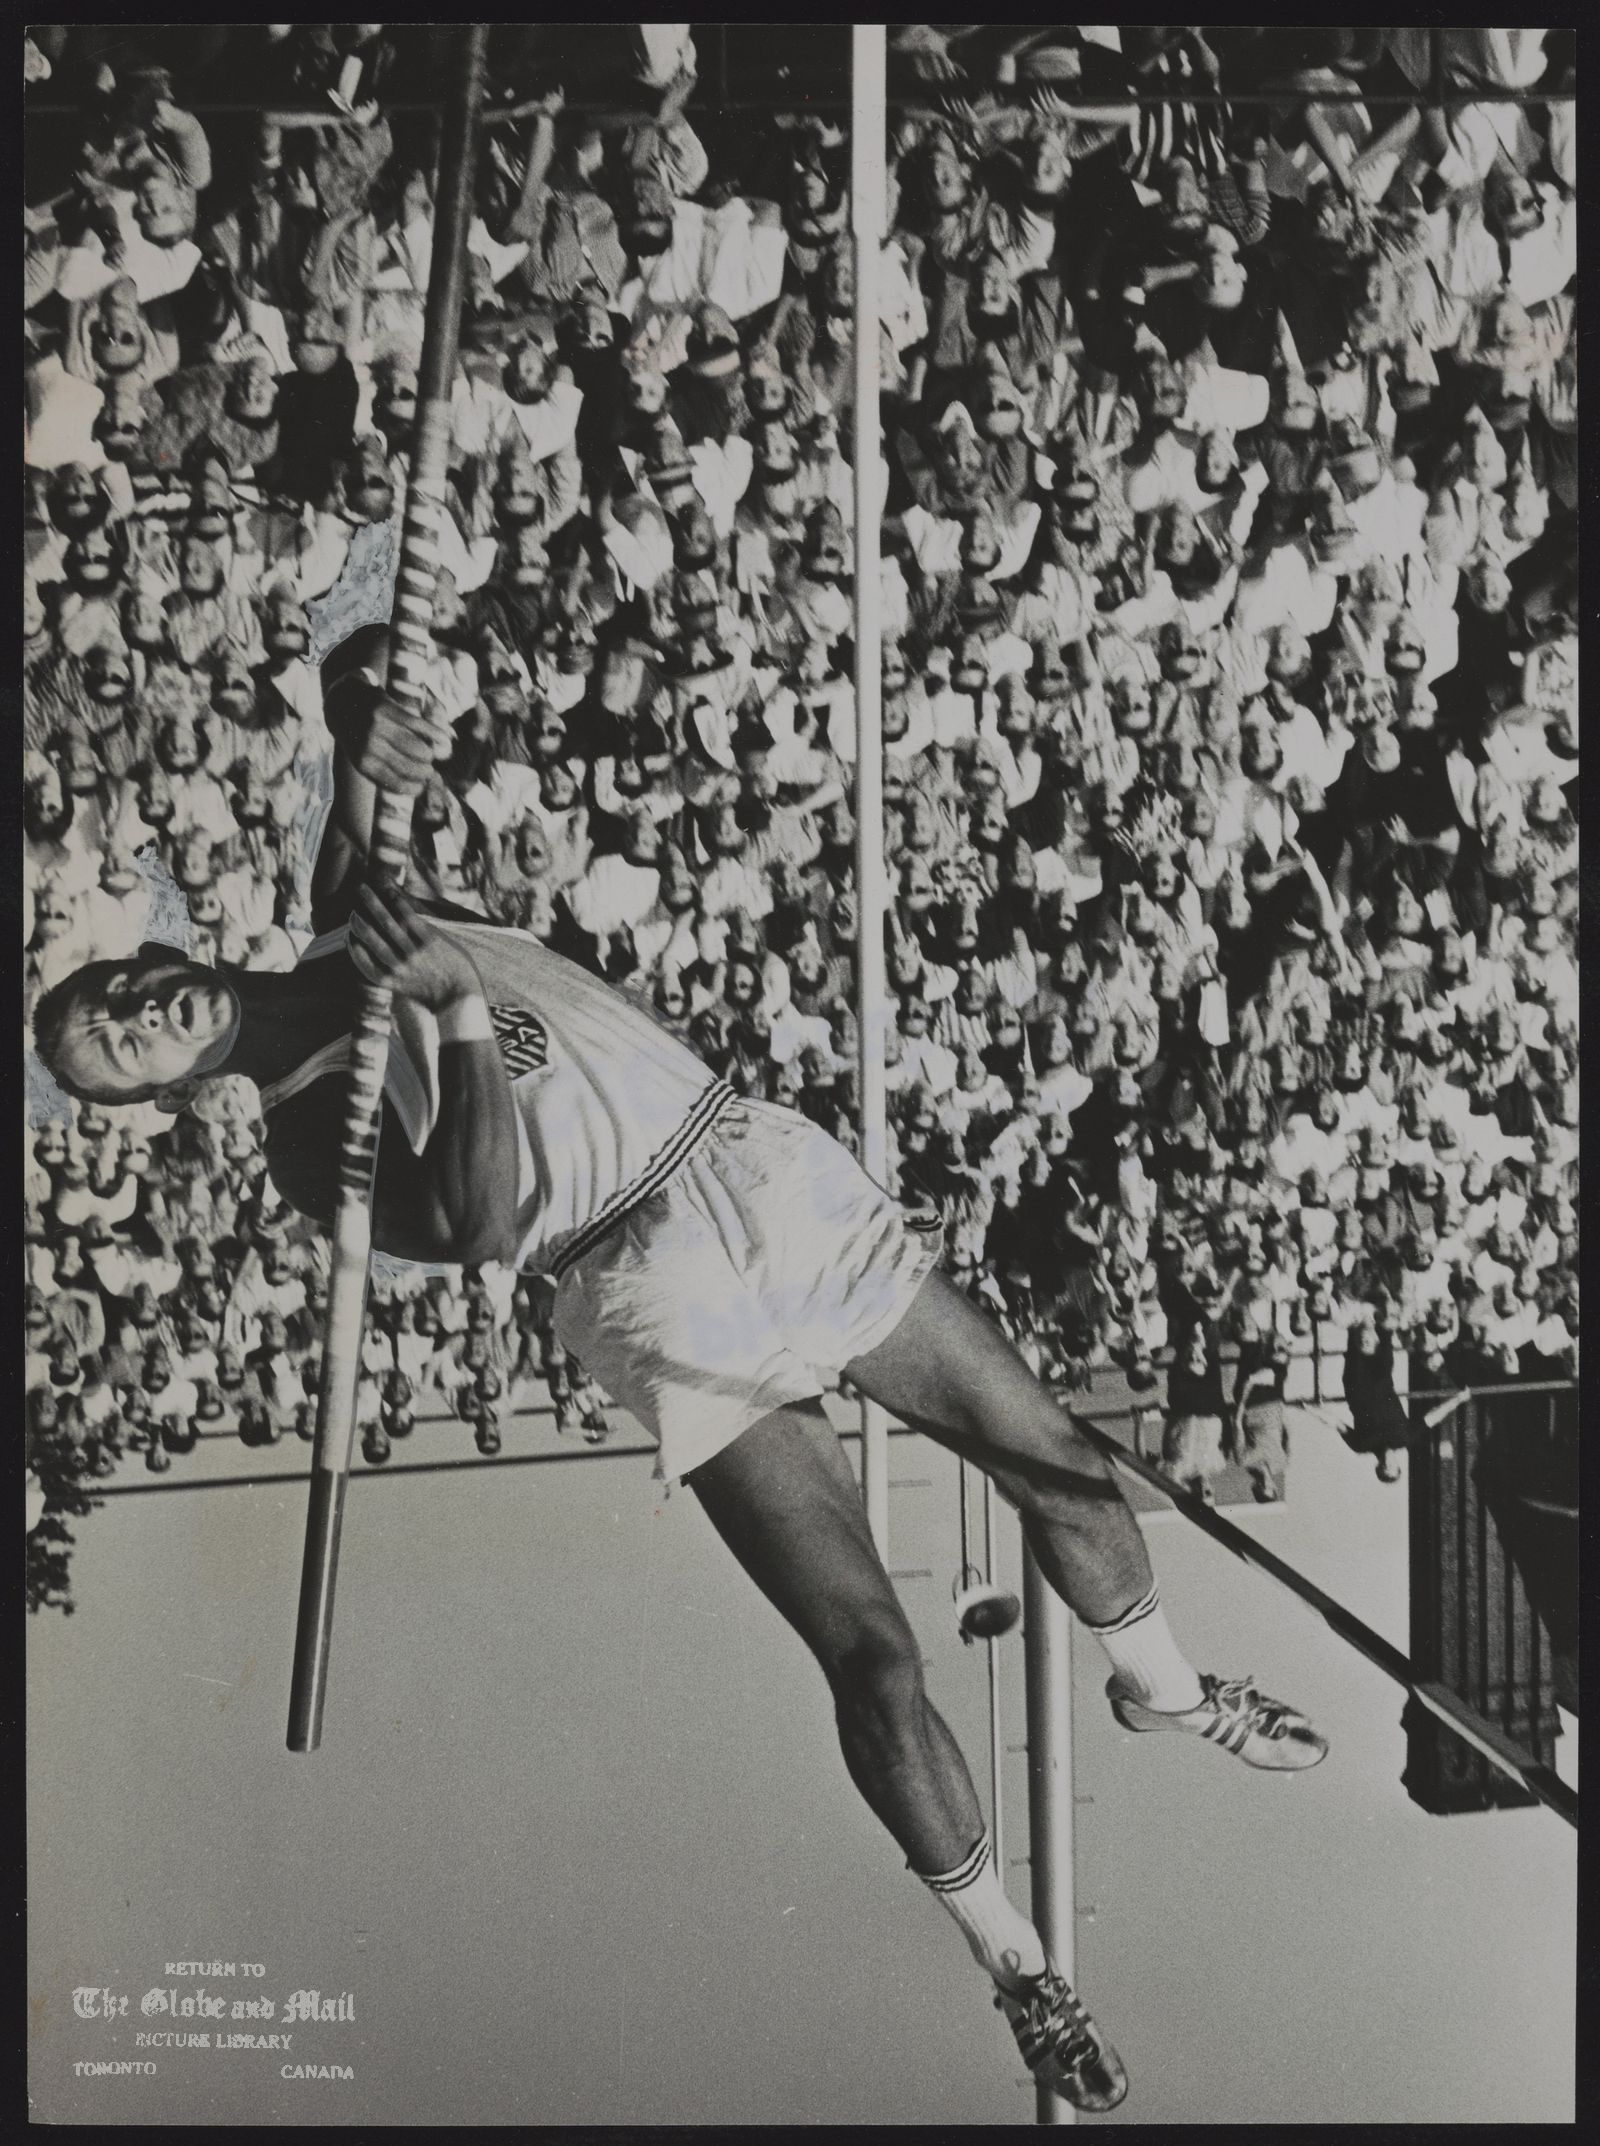 John UELSES Athlete John Uelses, former world record holder, heads skyward toward Canadian open pose voulting mark at International Games with vault of15 feet, 11 3/4 inches. Varsity Stadium's pole vaulting pit turned into a foamed rubber playground last night ofter conclusion of event.